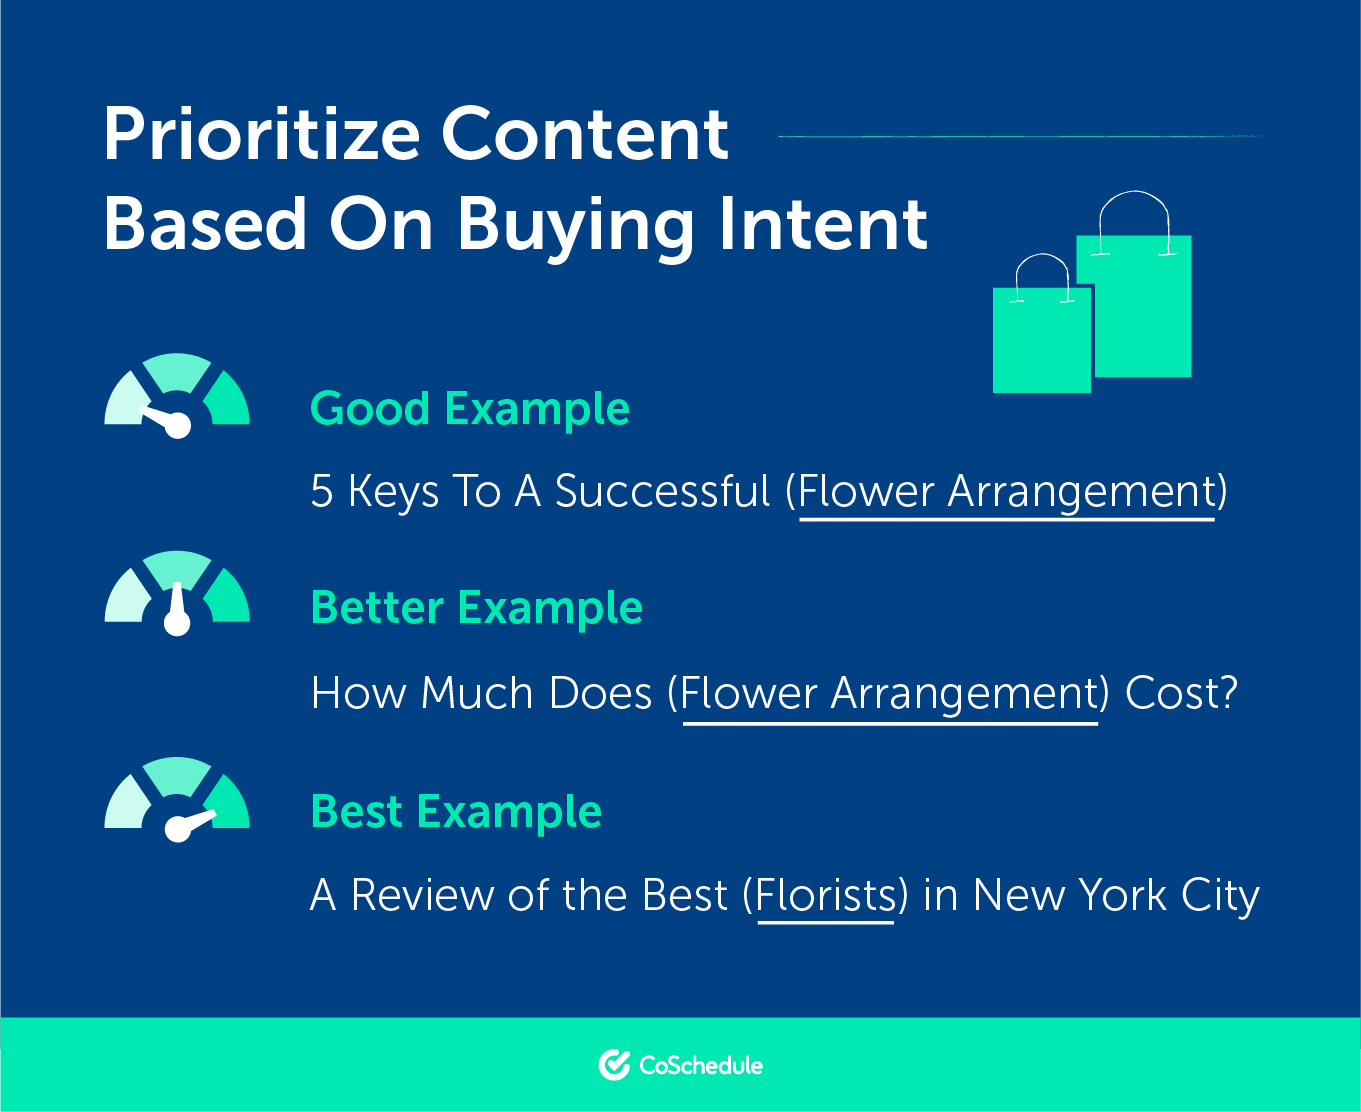 Prioritize Content Based on Buying Intent